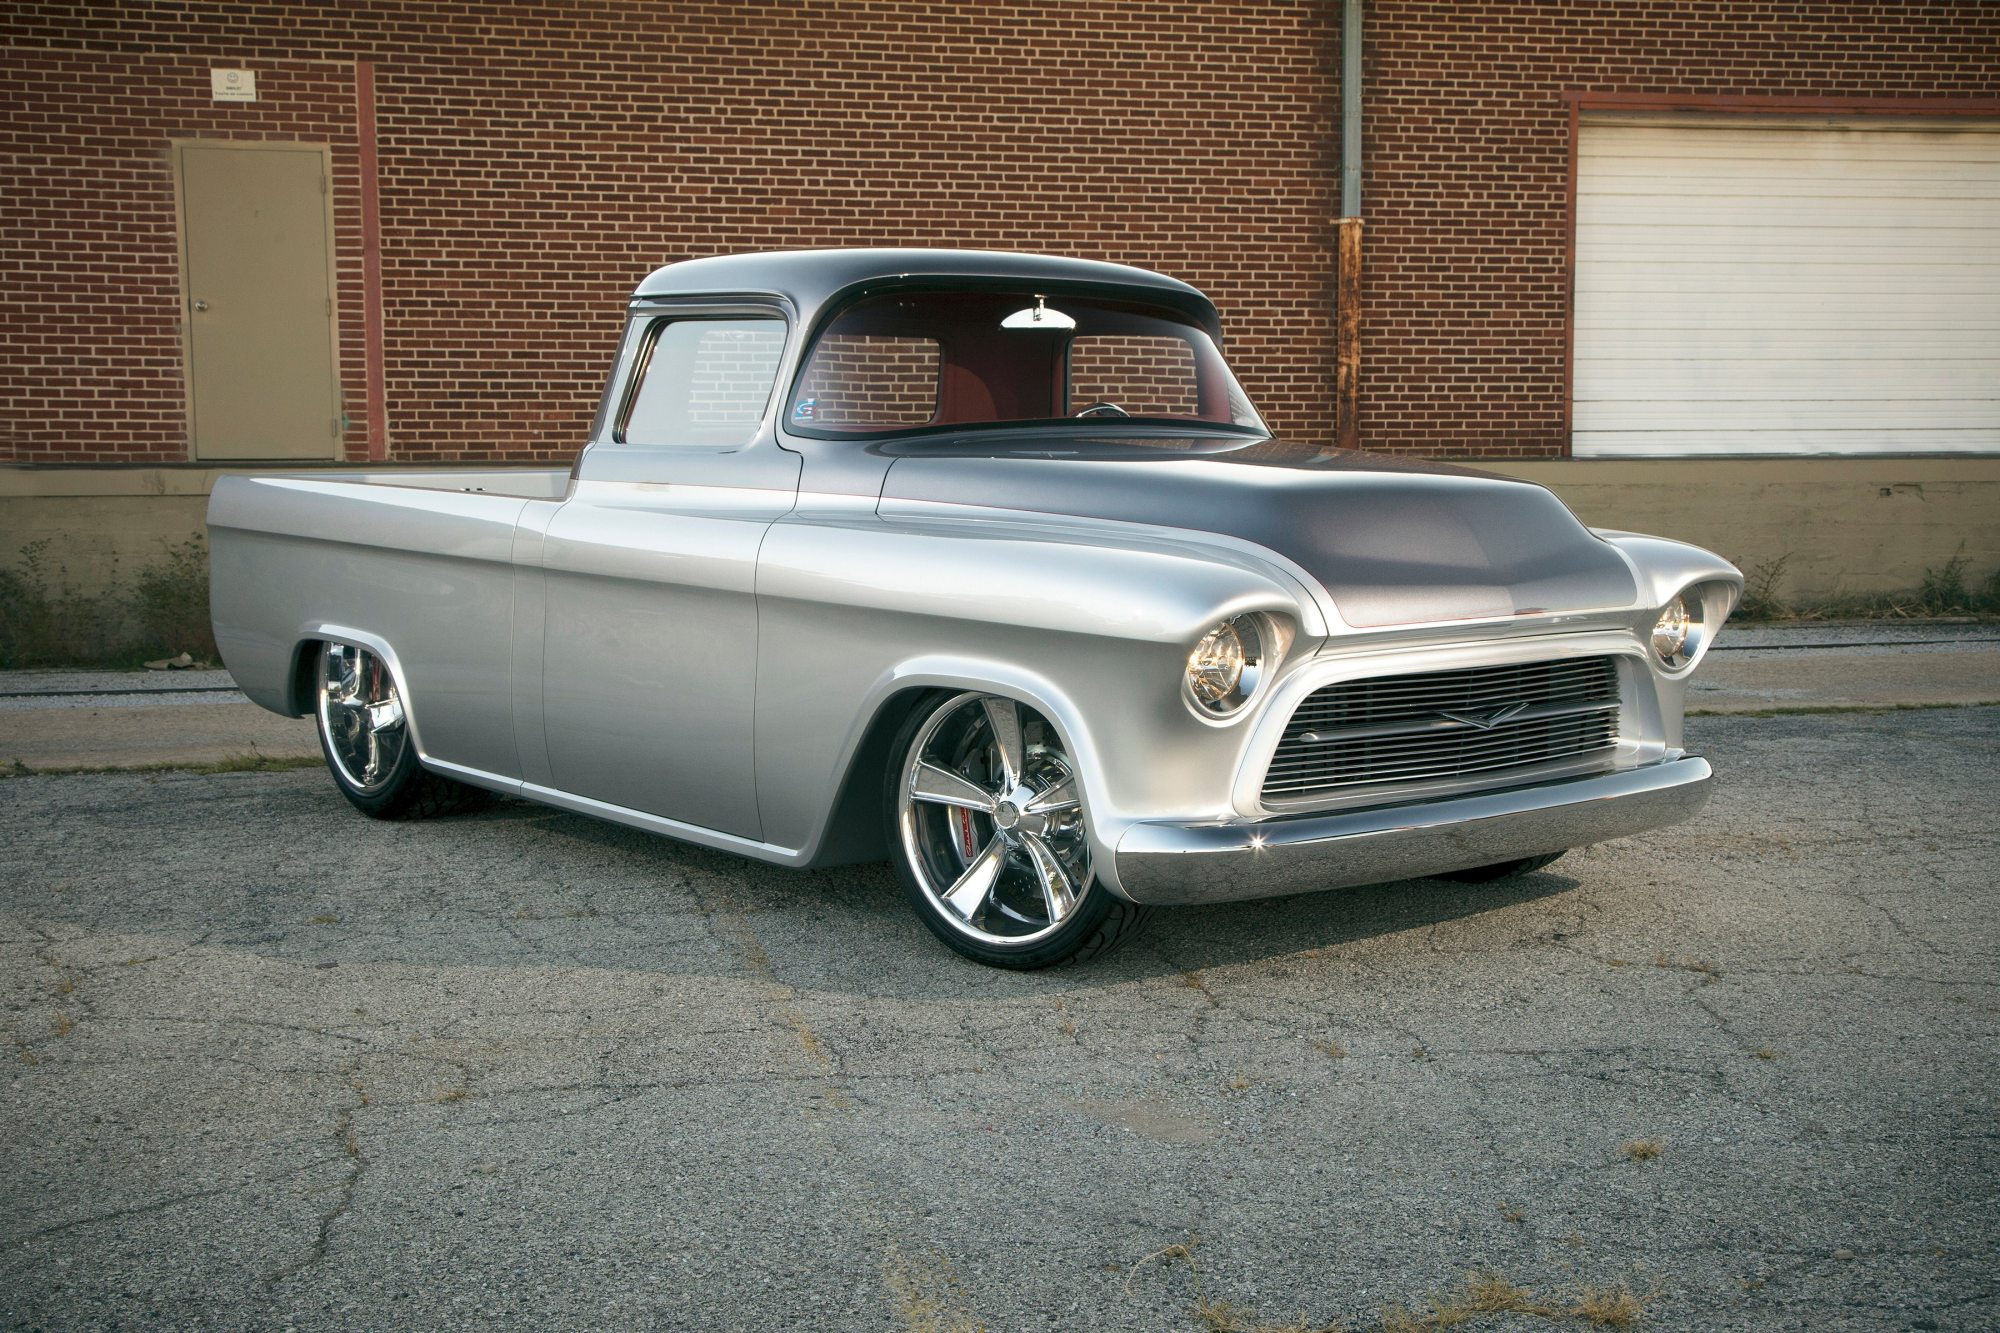 hight resolution of this 1957 chevrolet 3100 custom truck better known as quicksilver is a 2014 barrett jackson cup winner and has been recognized as one of the finest